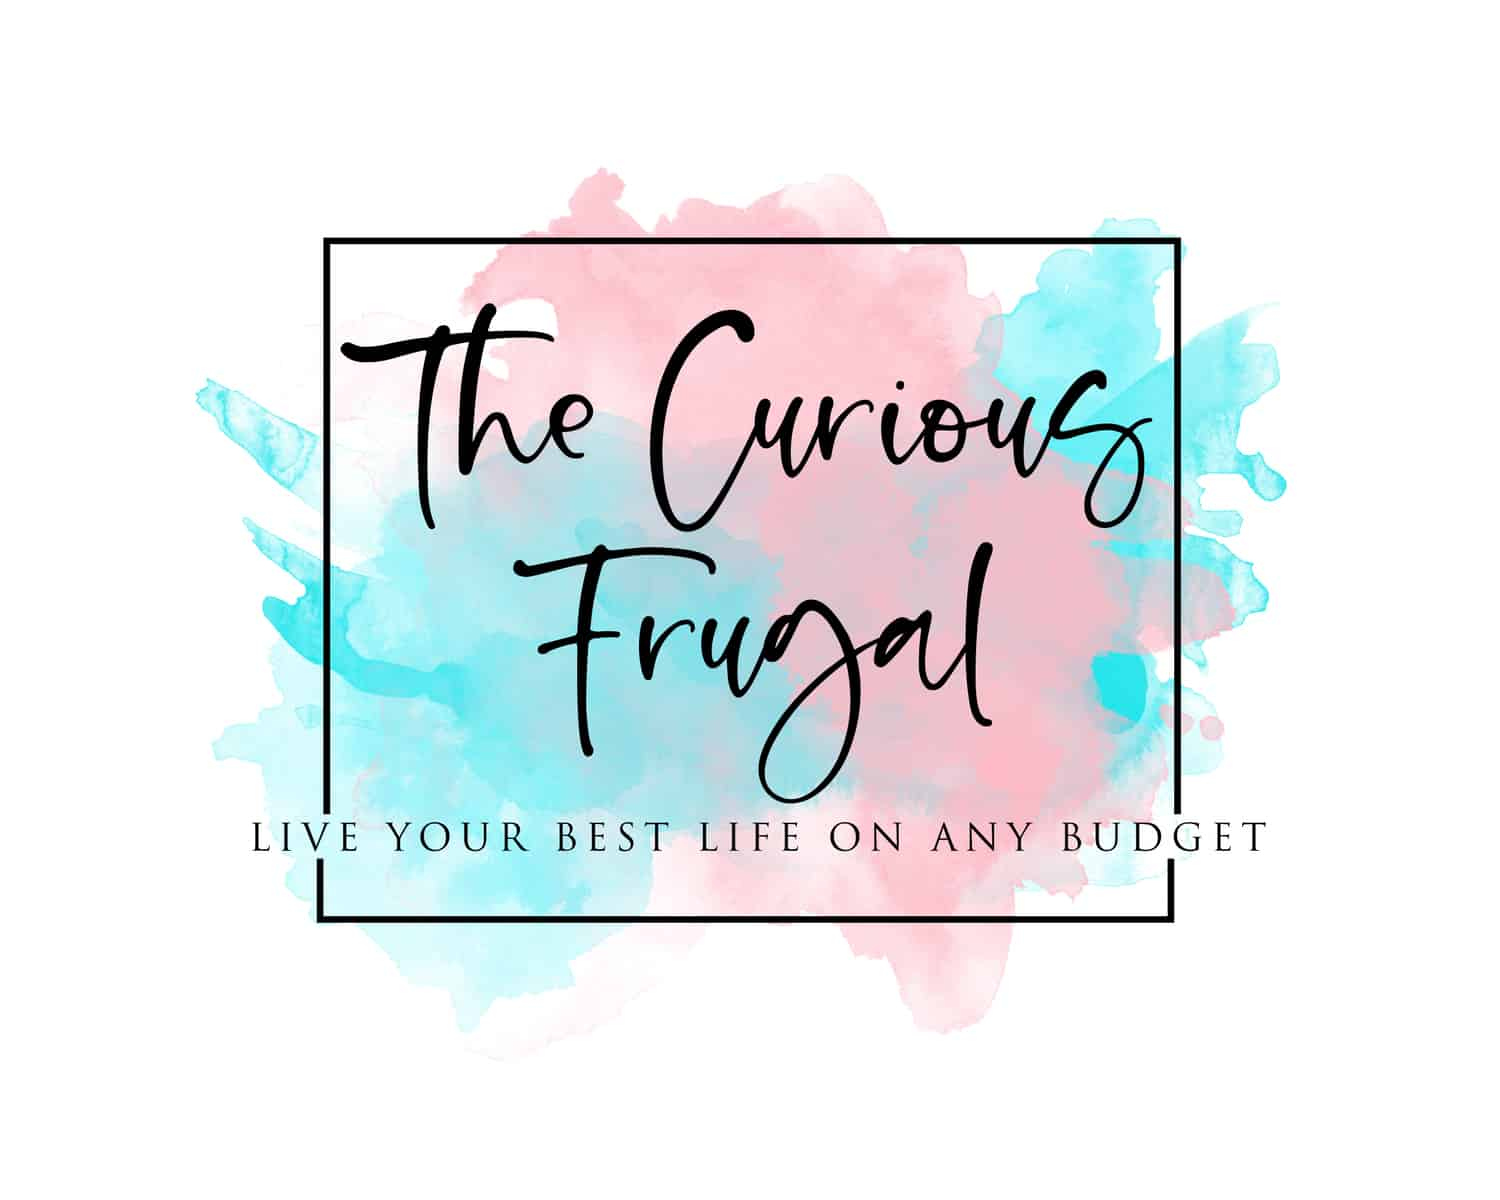 The Curious Frugal logo